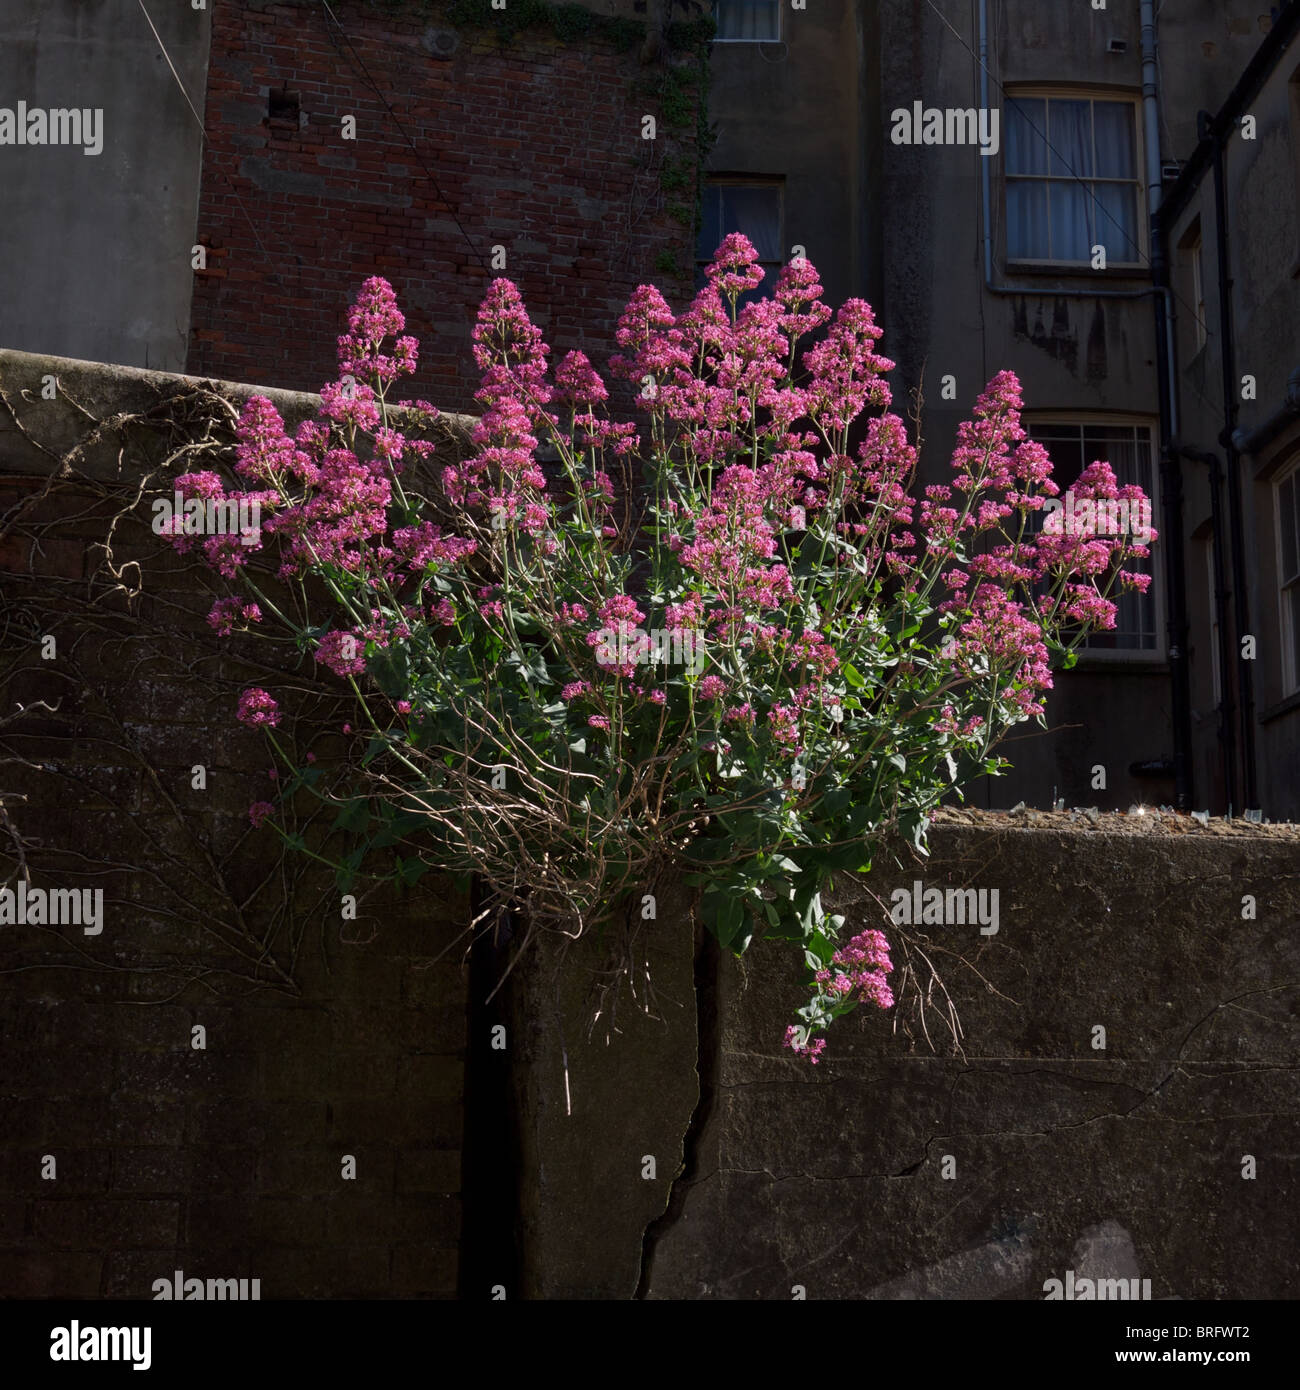 Wild Flowers Growing From Wall High Resolution Stock Photography And Images Alamy